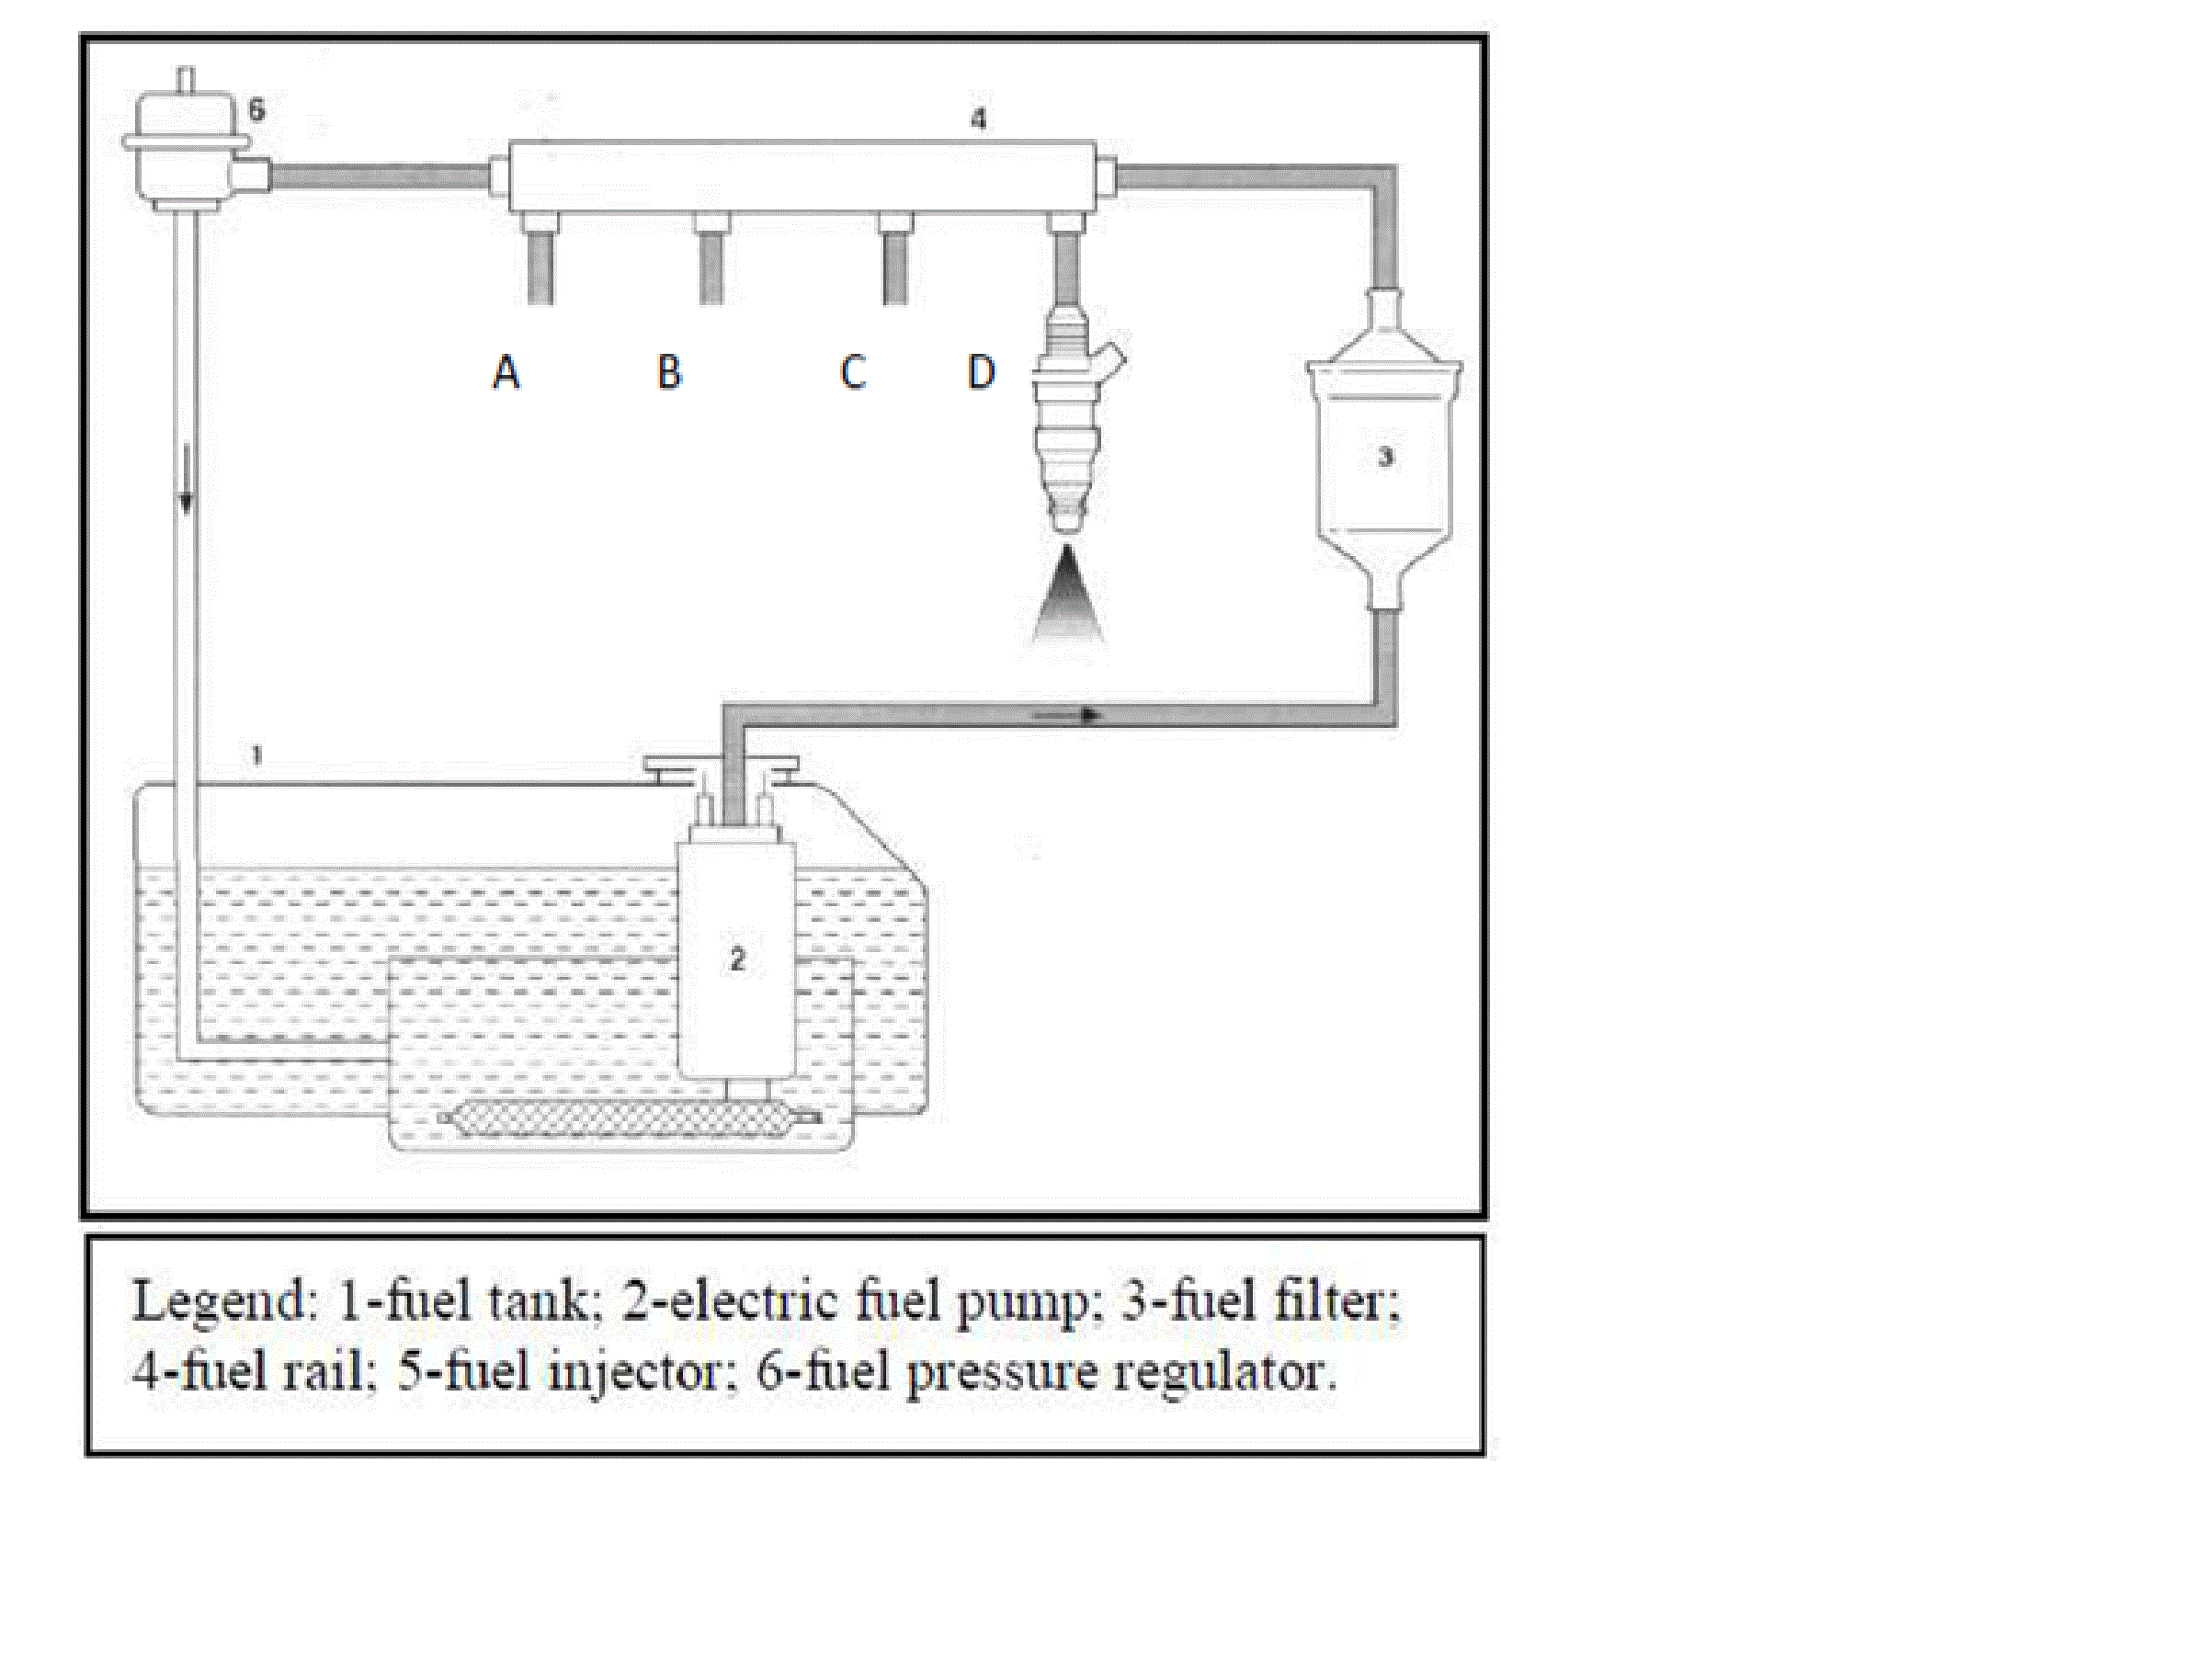 solved for the typical gasoline port fuel injection syste Port Fuel Injection Diagram